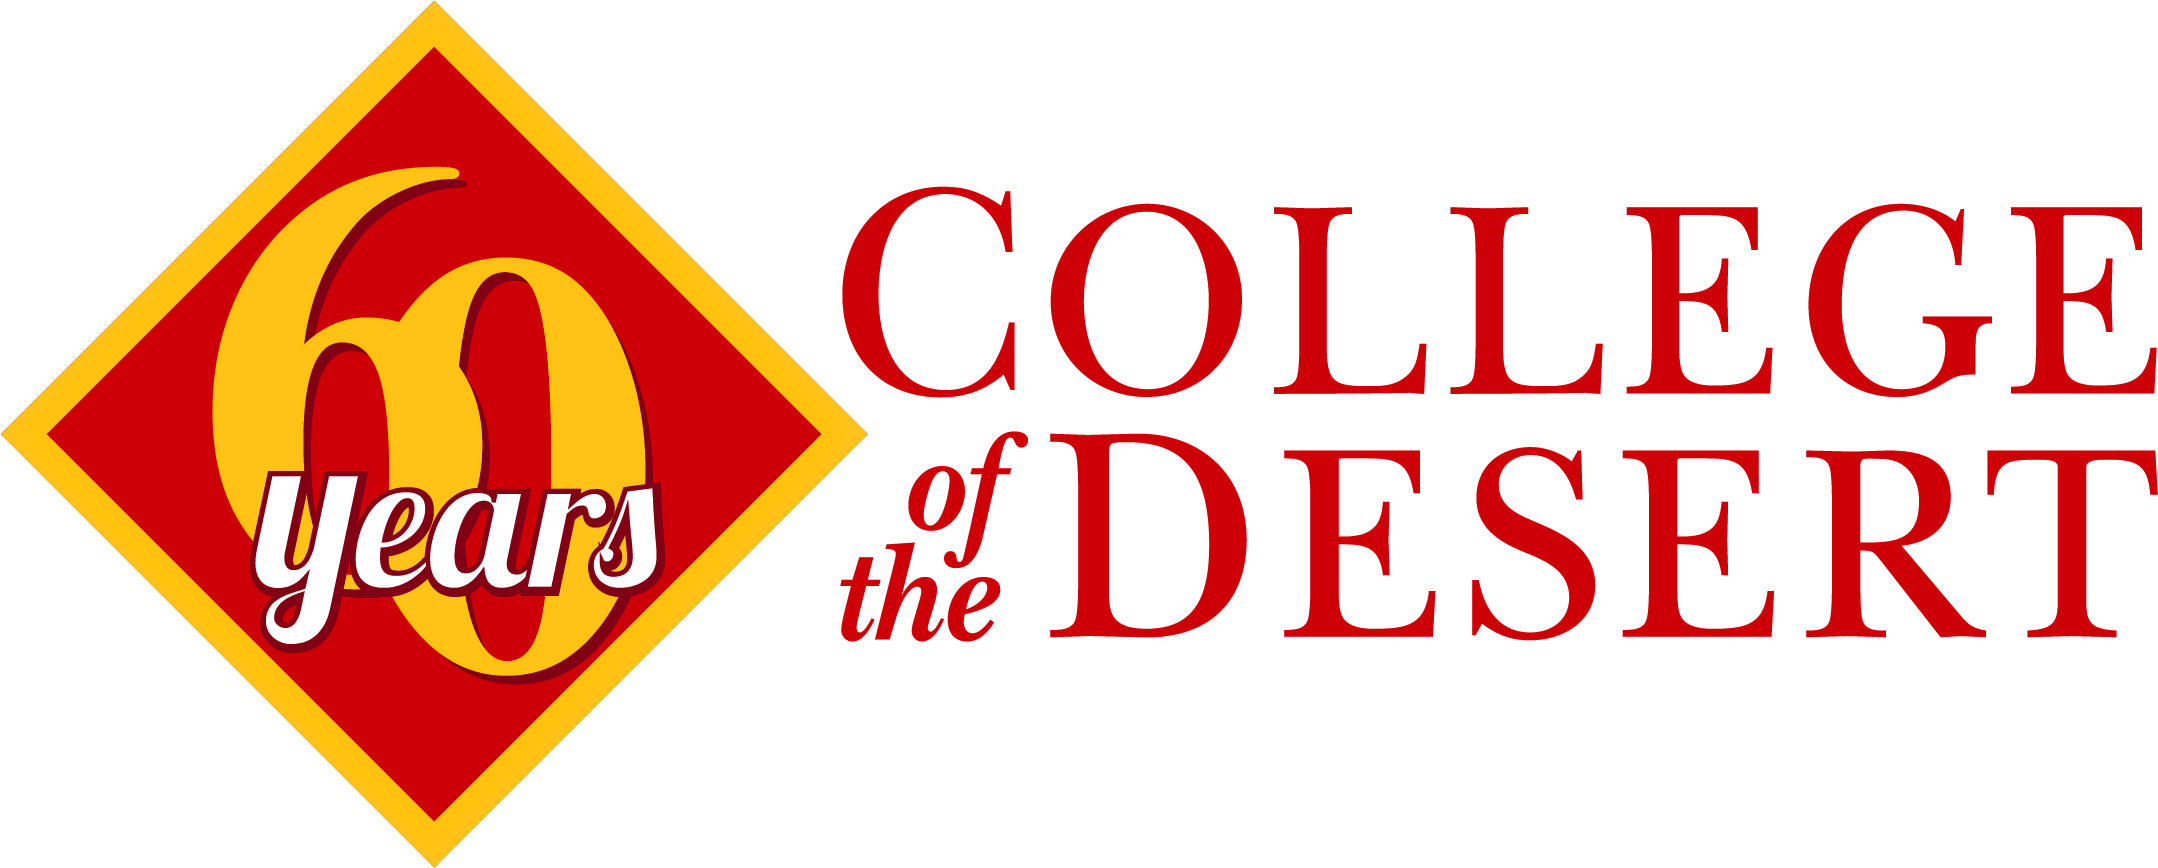 College of the Desert 60 years